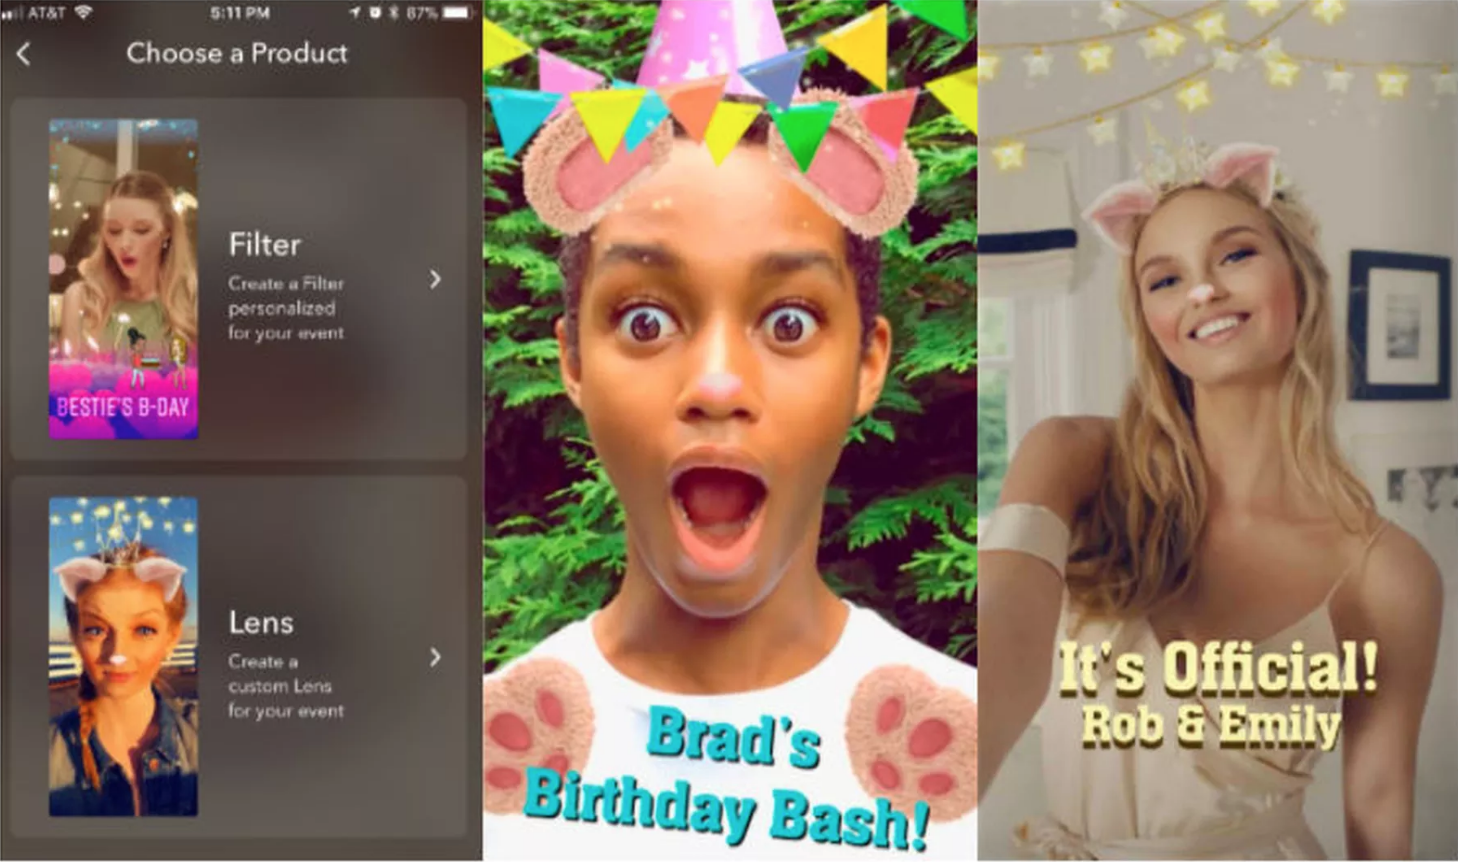 Snapchat personalized Lenses